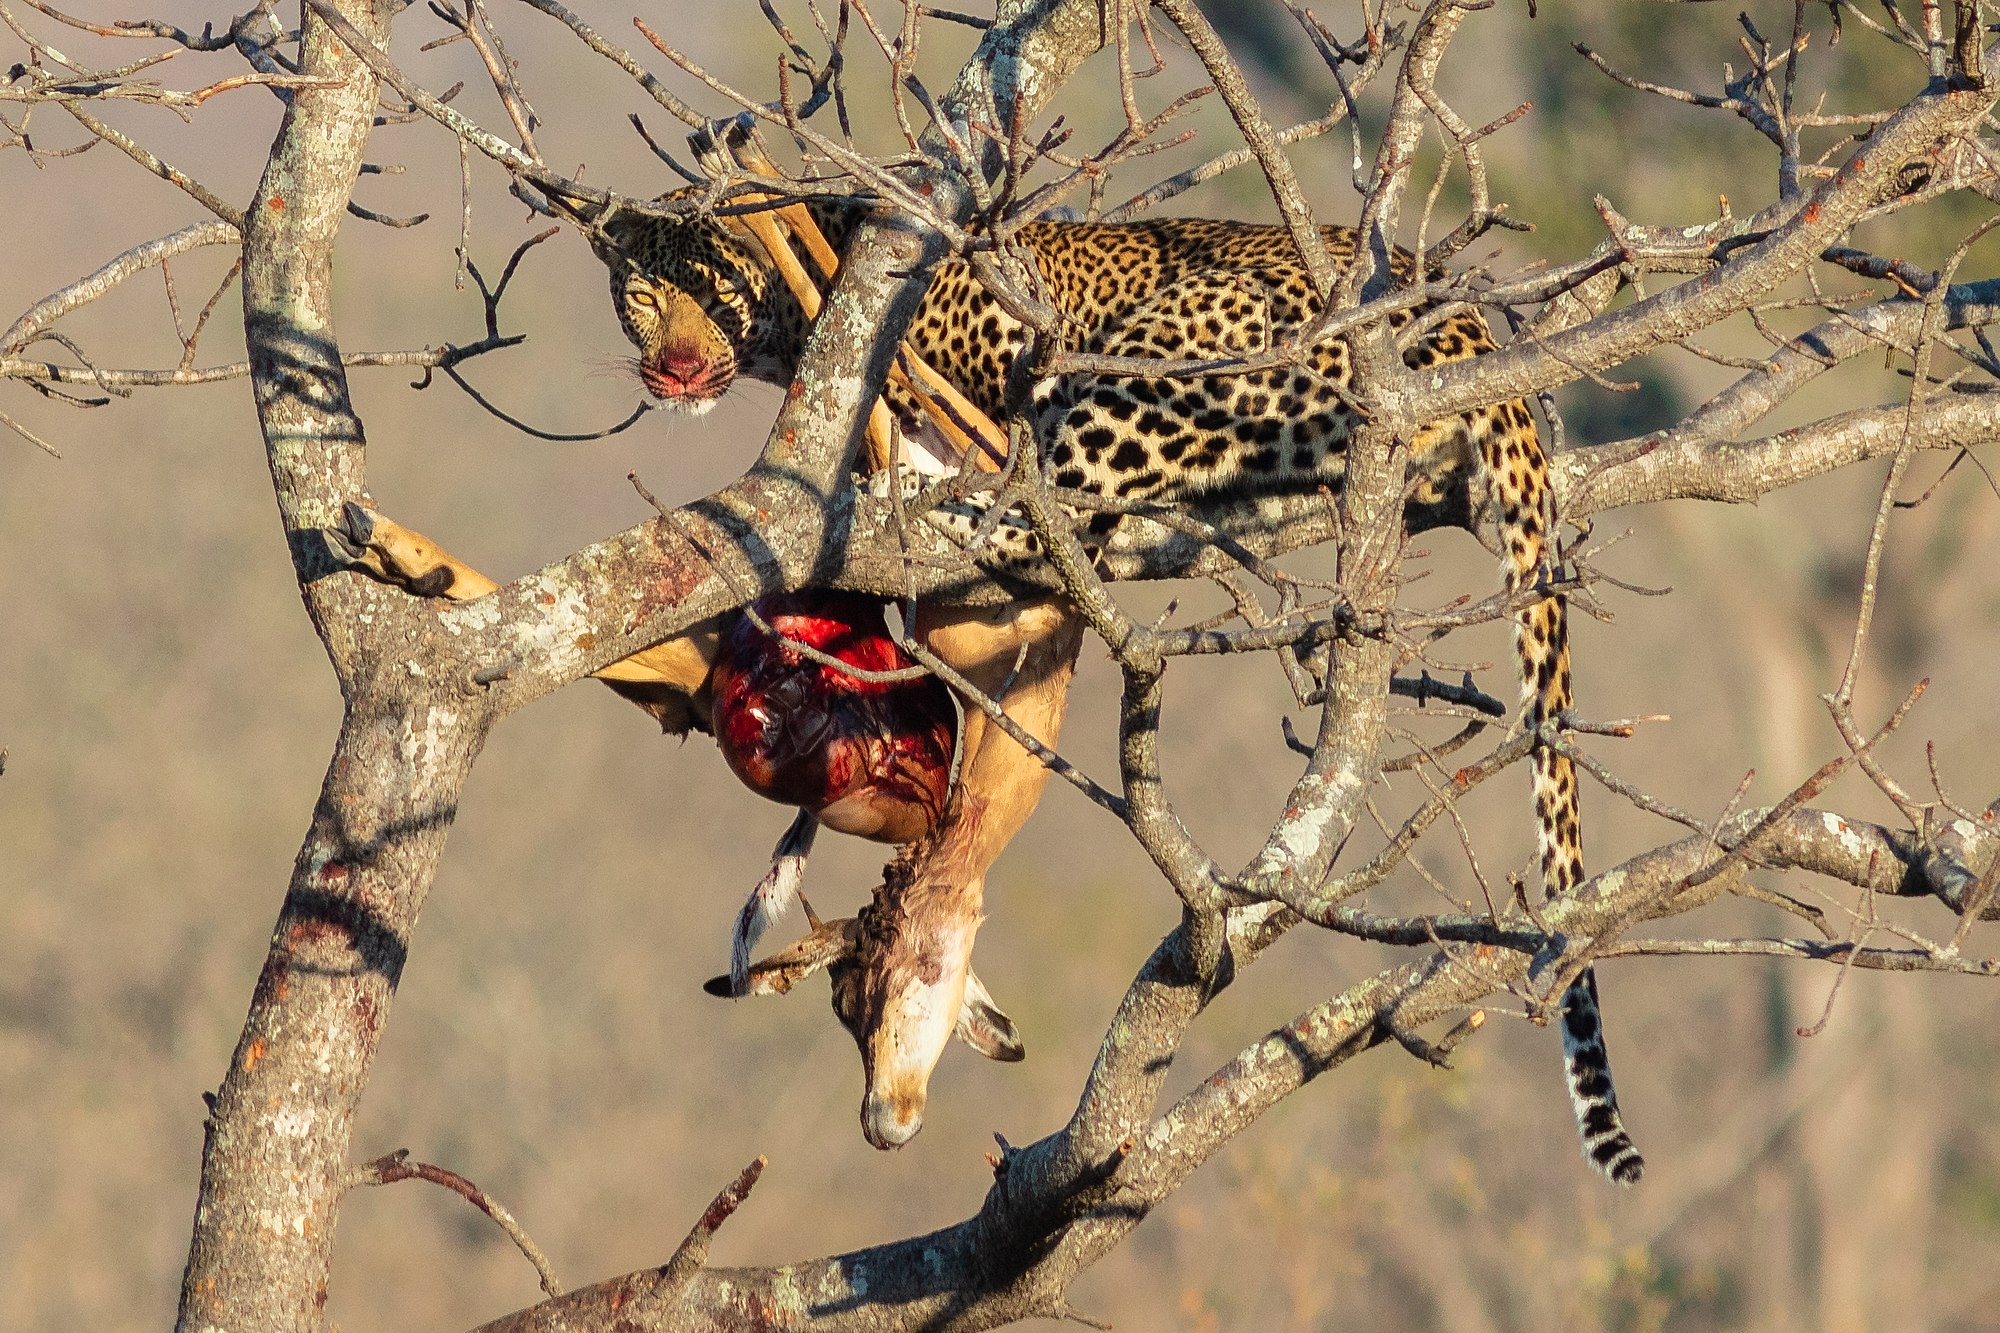 Leopard (Panthera pardus) devouring an antelope, Kruger National Park, South Africa